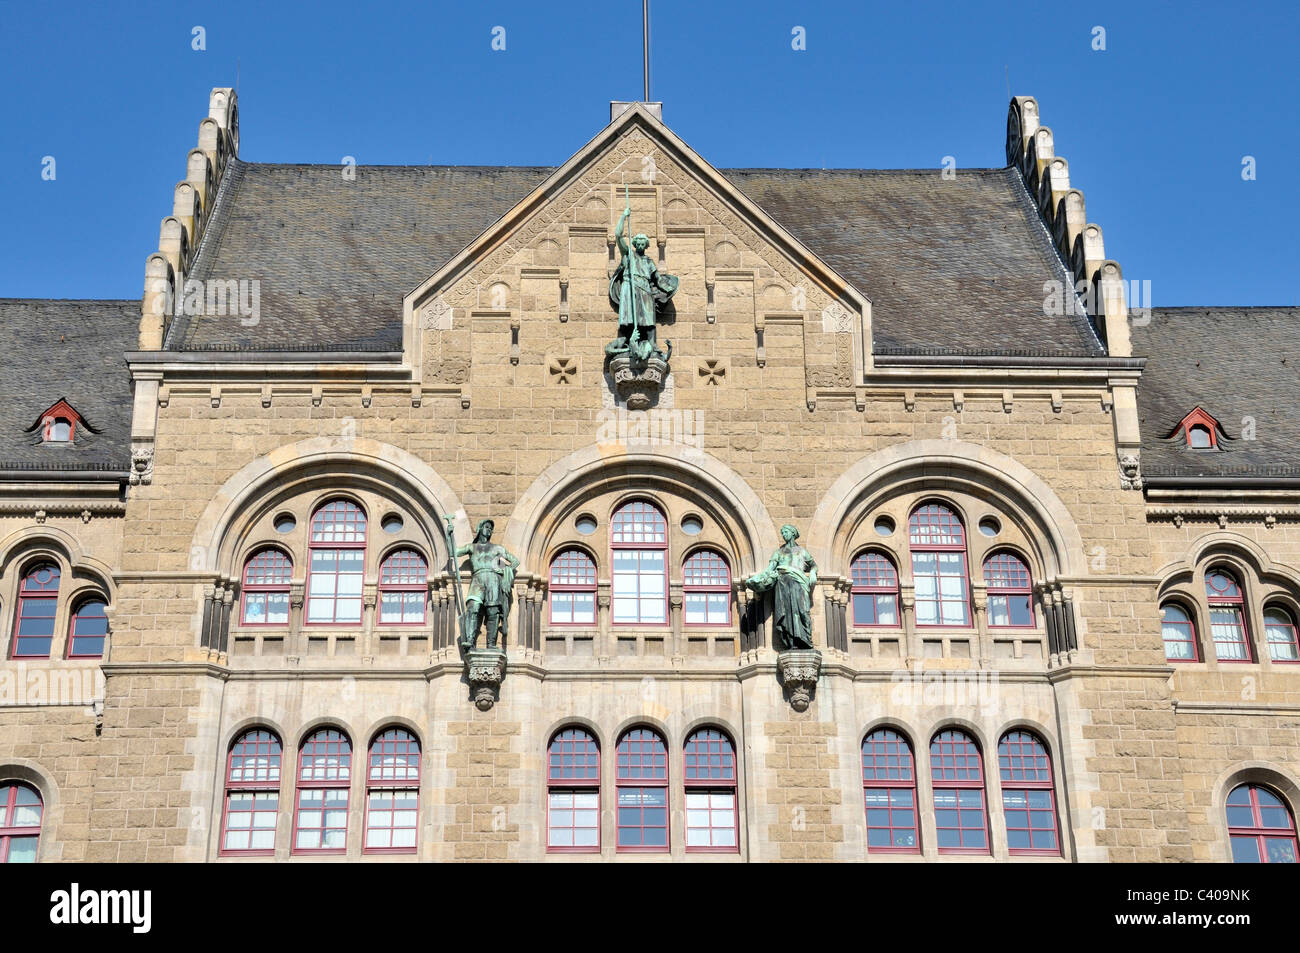 BWB, Germany, building, construction, Europe, Koblenz, Prussian, government building, Rhine arrangements, Rhineland - Stock Image